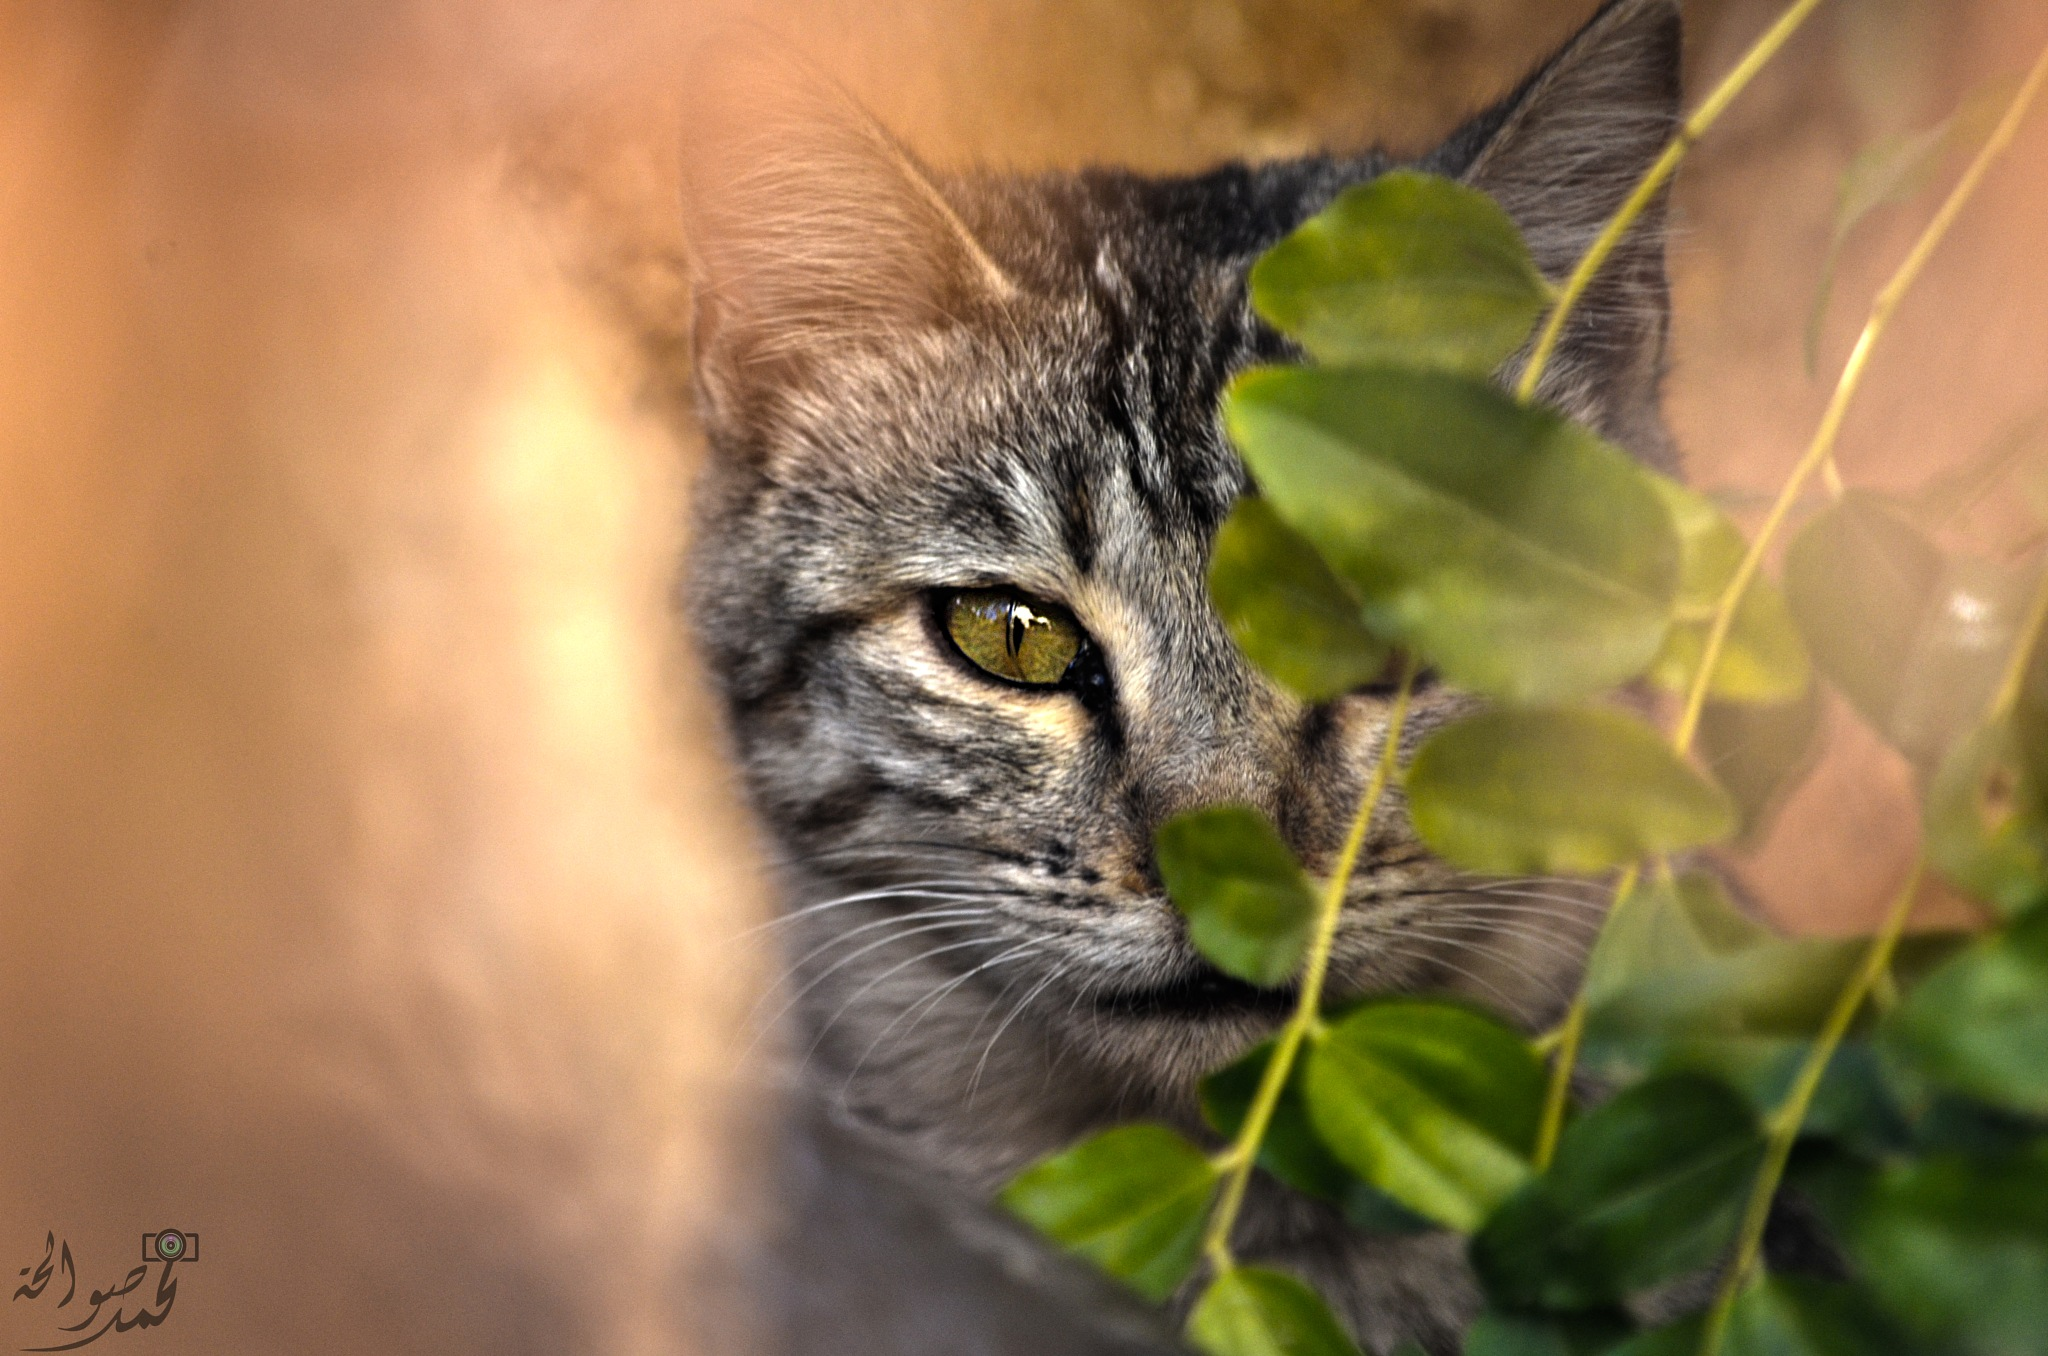 I can see you  by Mohammad Sawalha